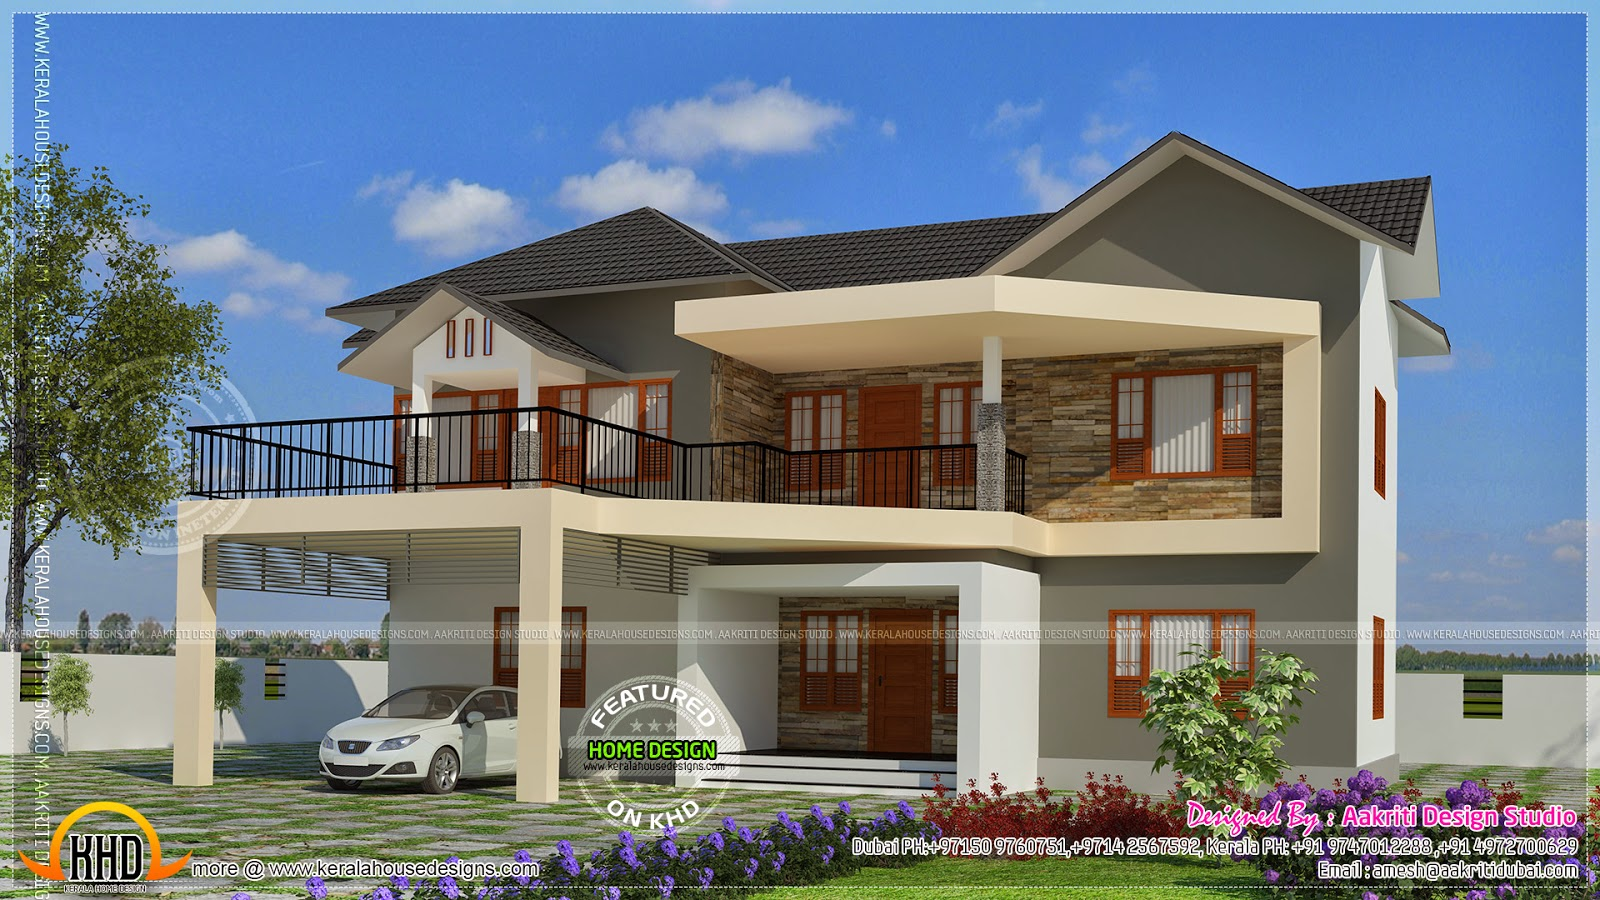 Elegant villa exterior kerala home design and floor plans for Villas exterior design pictures